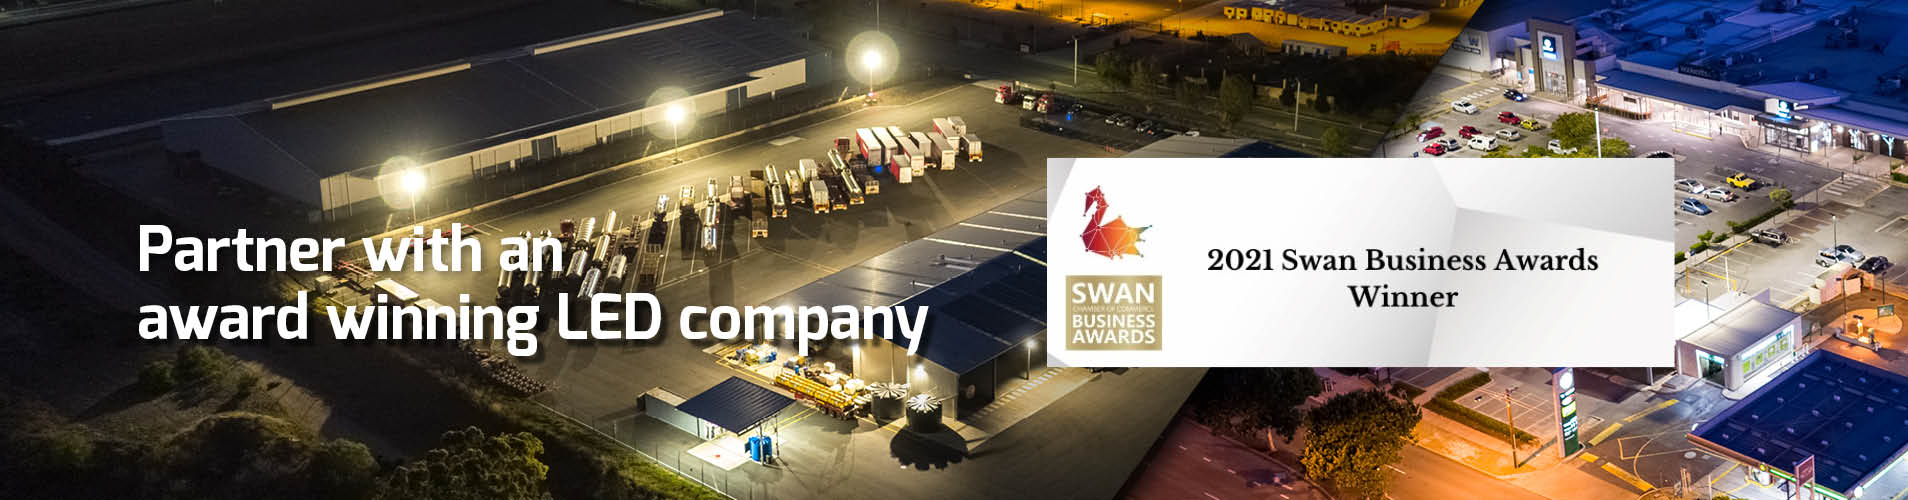 2021 Swan Business Awards Winner